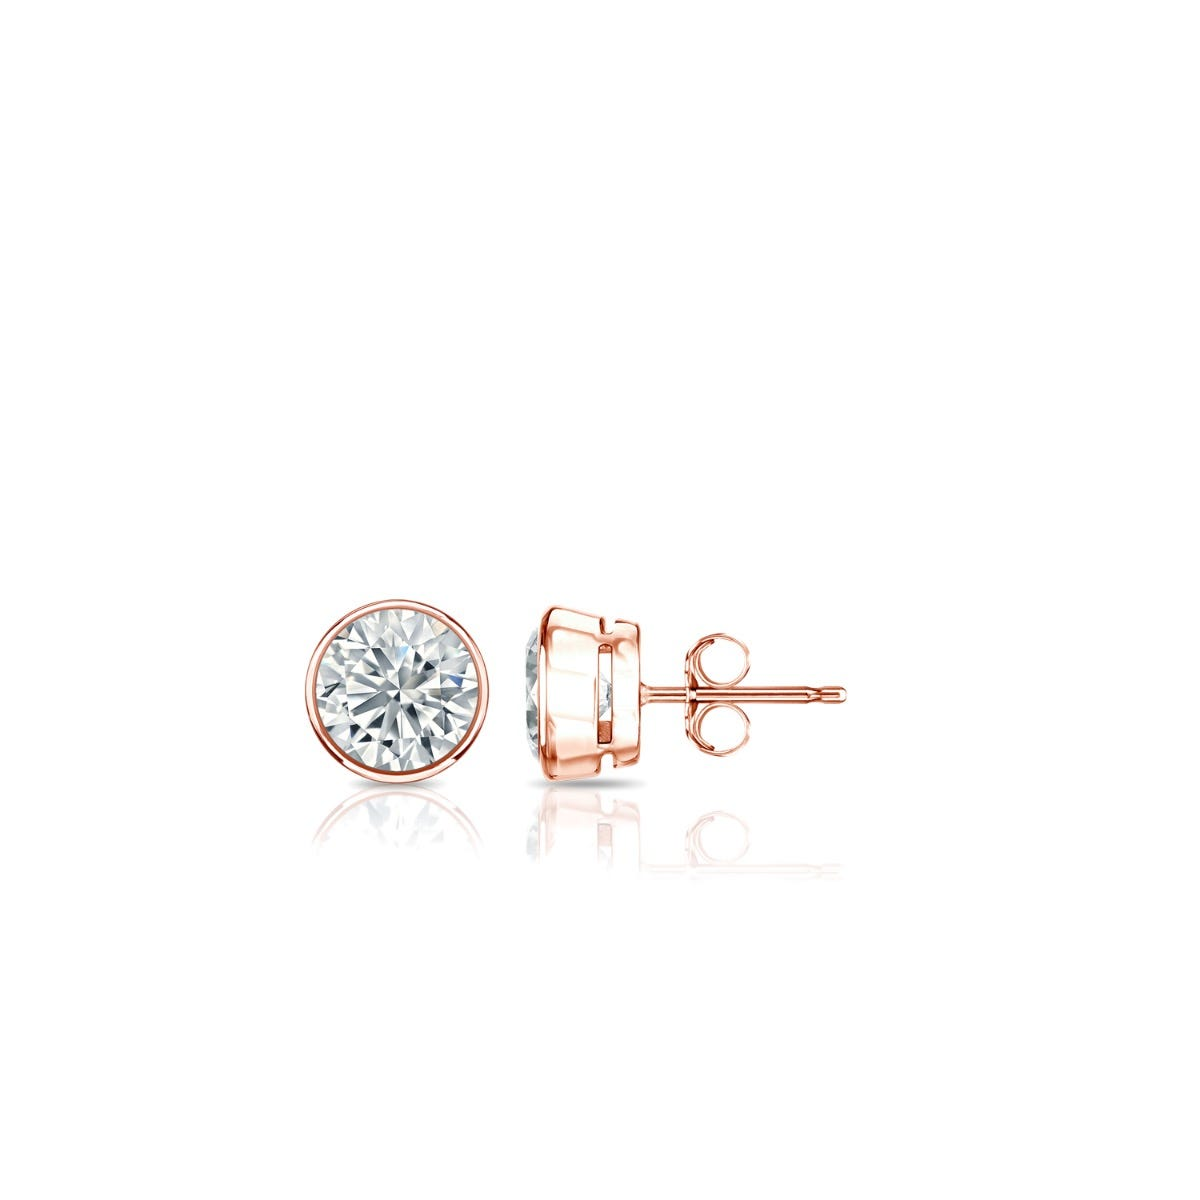 Diamond Round Bezel-Set 1/5ctw. Solitaire Stud (IJ-SI2) Earrings in 14K Rose Gold